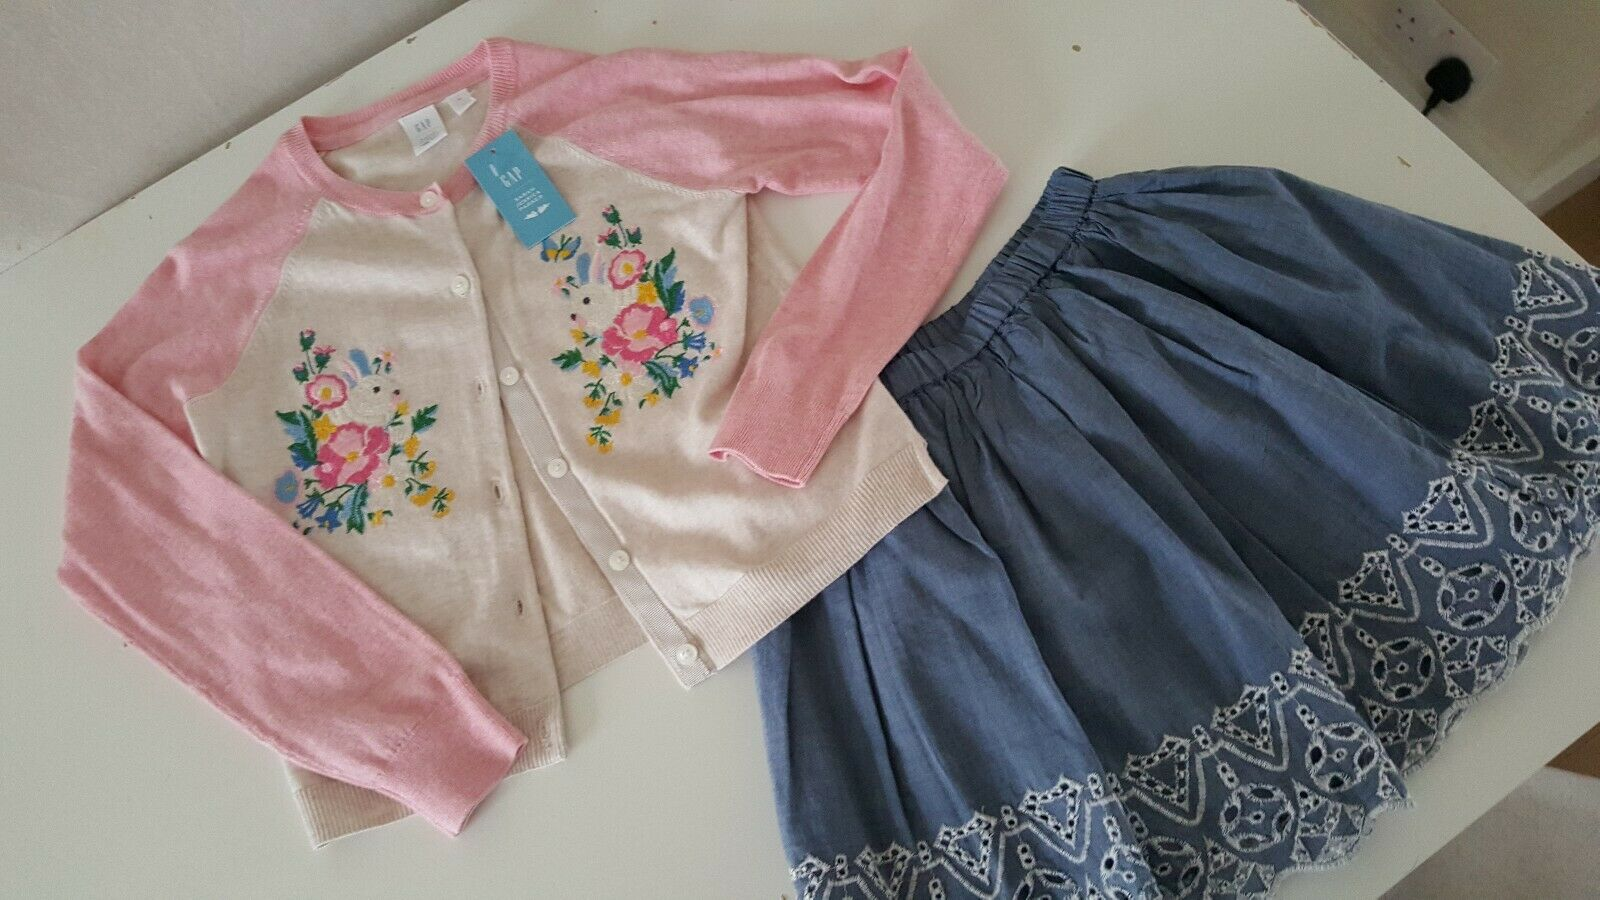 Gap Girls Skirt And Jessica Parker From Gap Cardigan Size M Bunny And Flower New